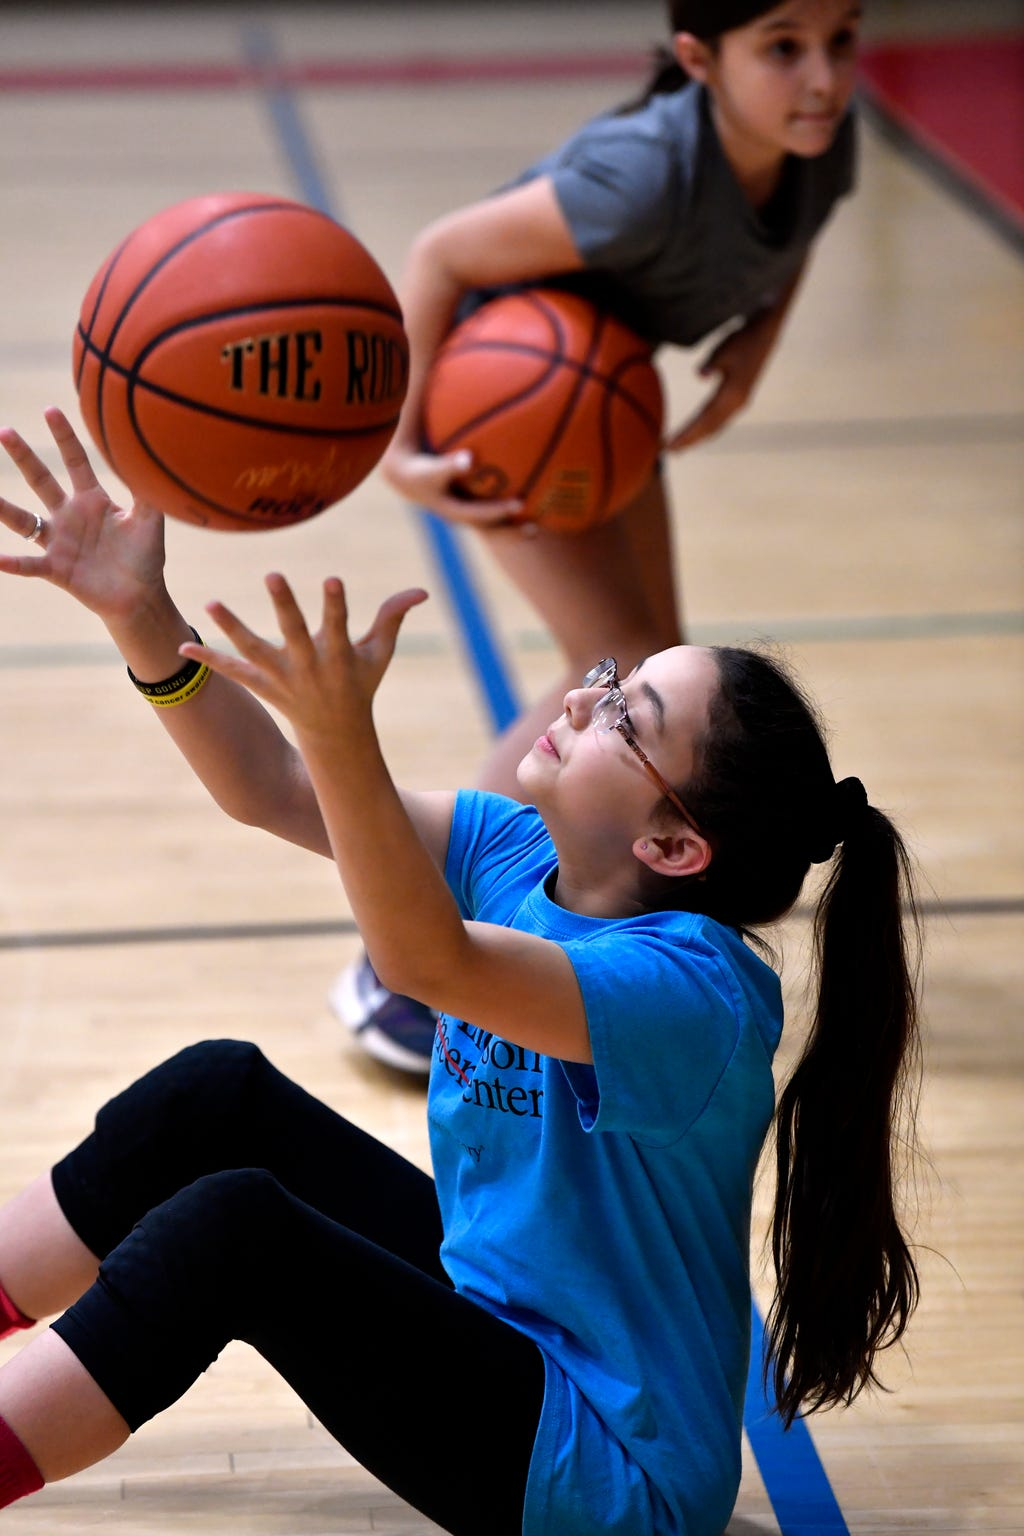 It was questionable Ciara Husing, 10, would ever play sports again after she was diagnosed with synovial sarcoma. But she runs circles around people now, despite a large scar on her left leg.